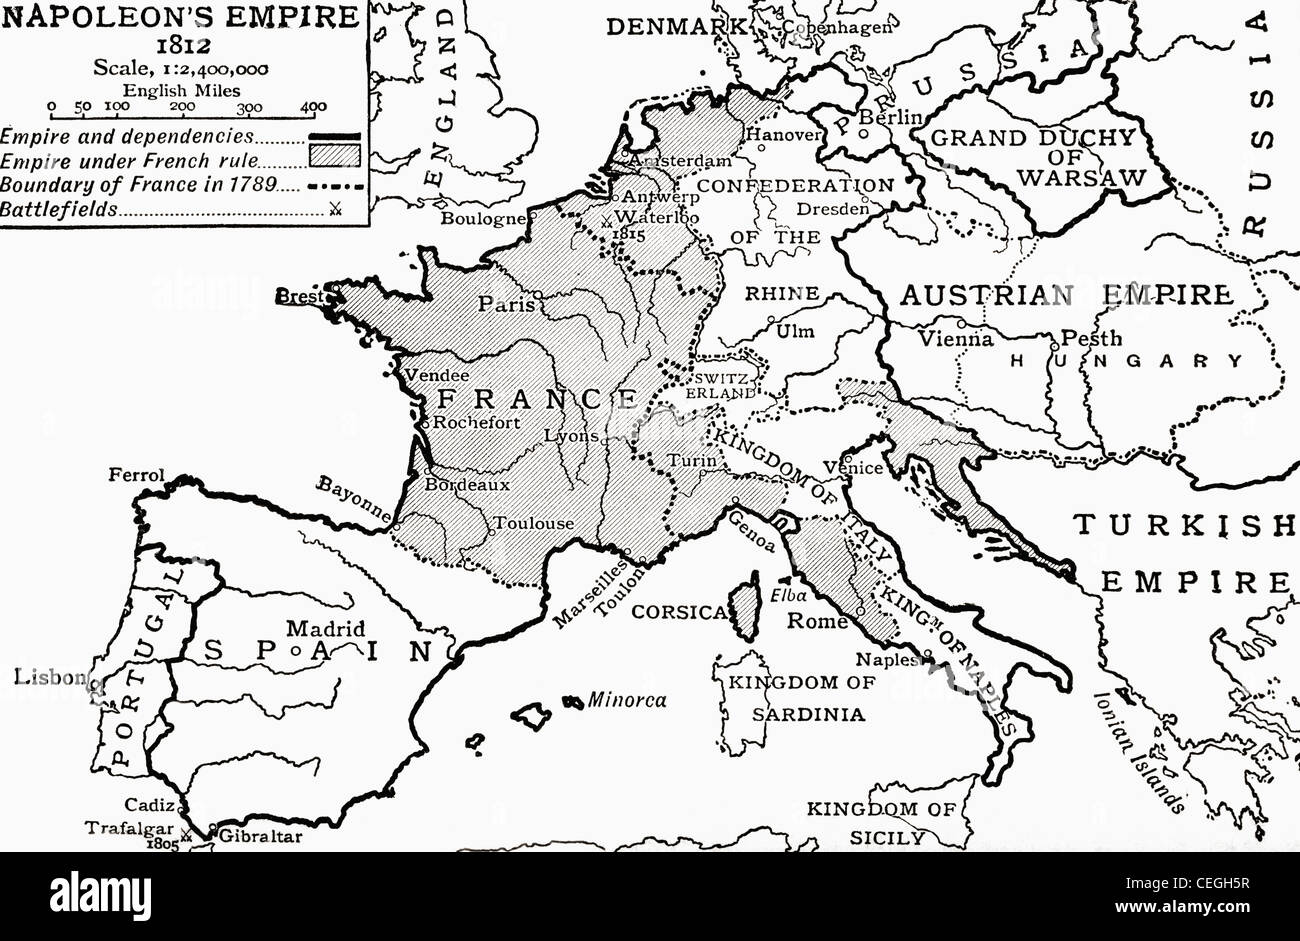 Map Of Napoleon S Empire In From The Story Of